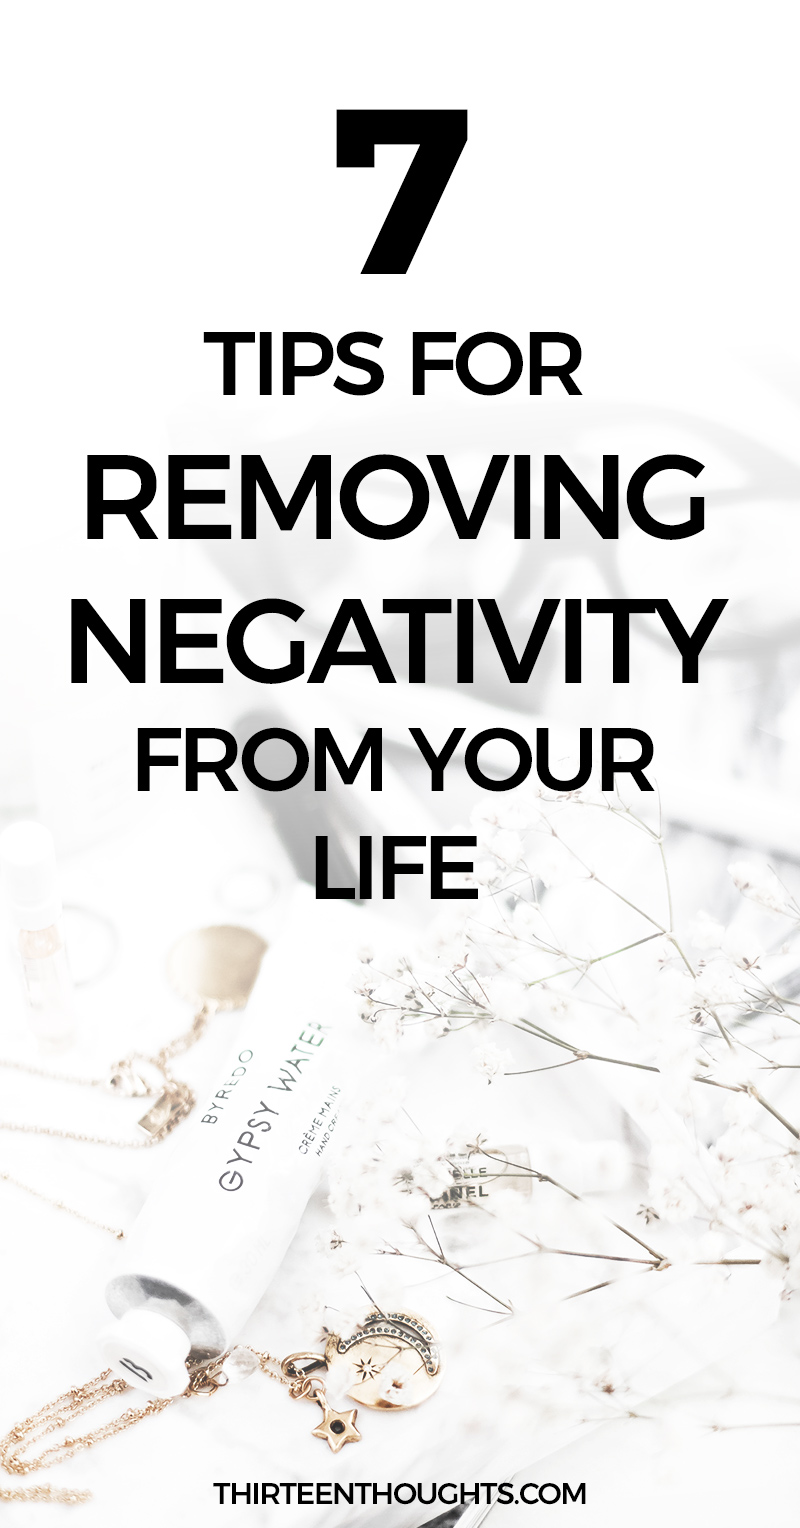 Tips for Removing Negativity from Your Life